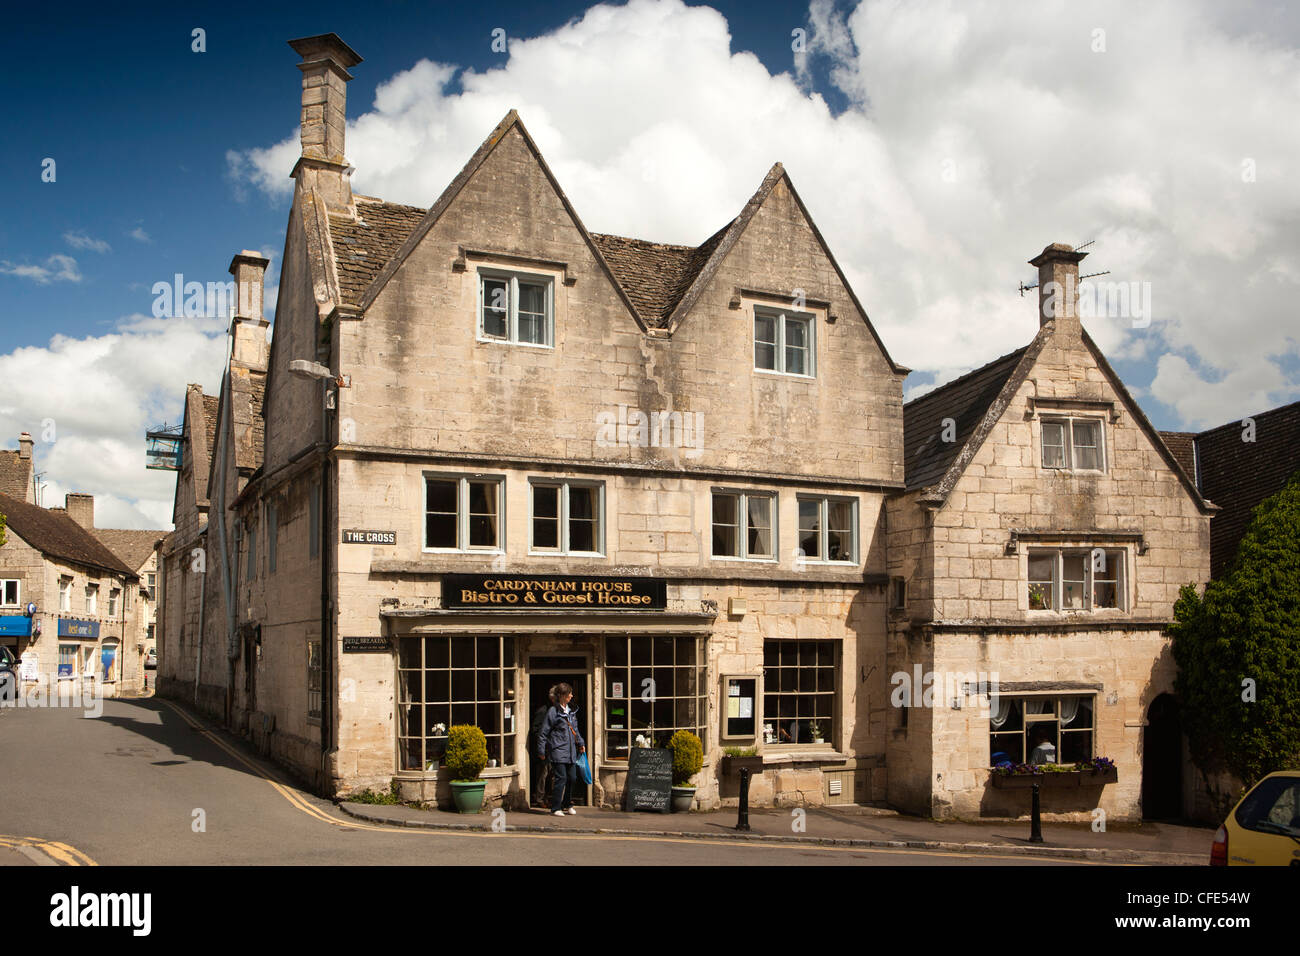 UK, Gloucestershire, Stroud, Painswick, The Cross, Cardynham House, Bistro and Guest House in late 15th century - Stock Image